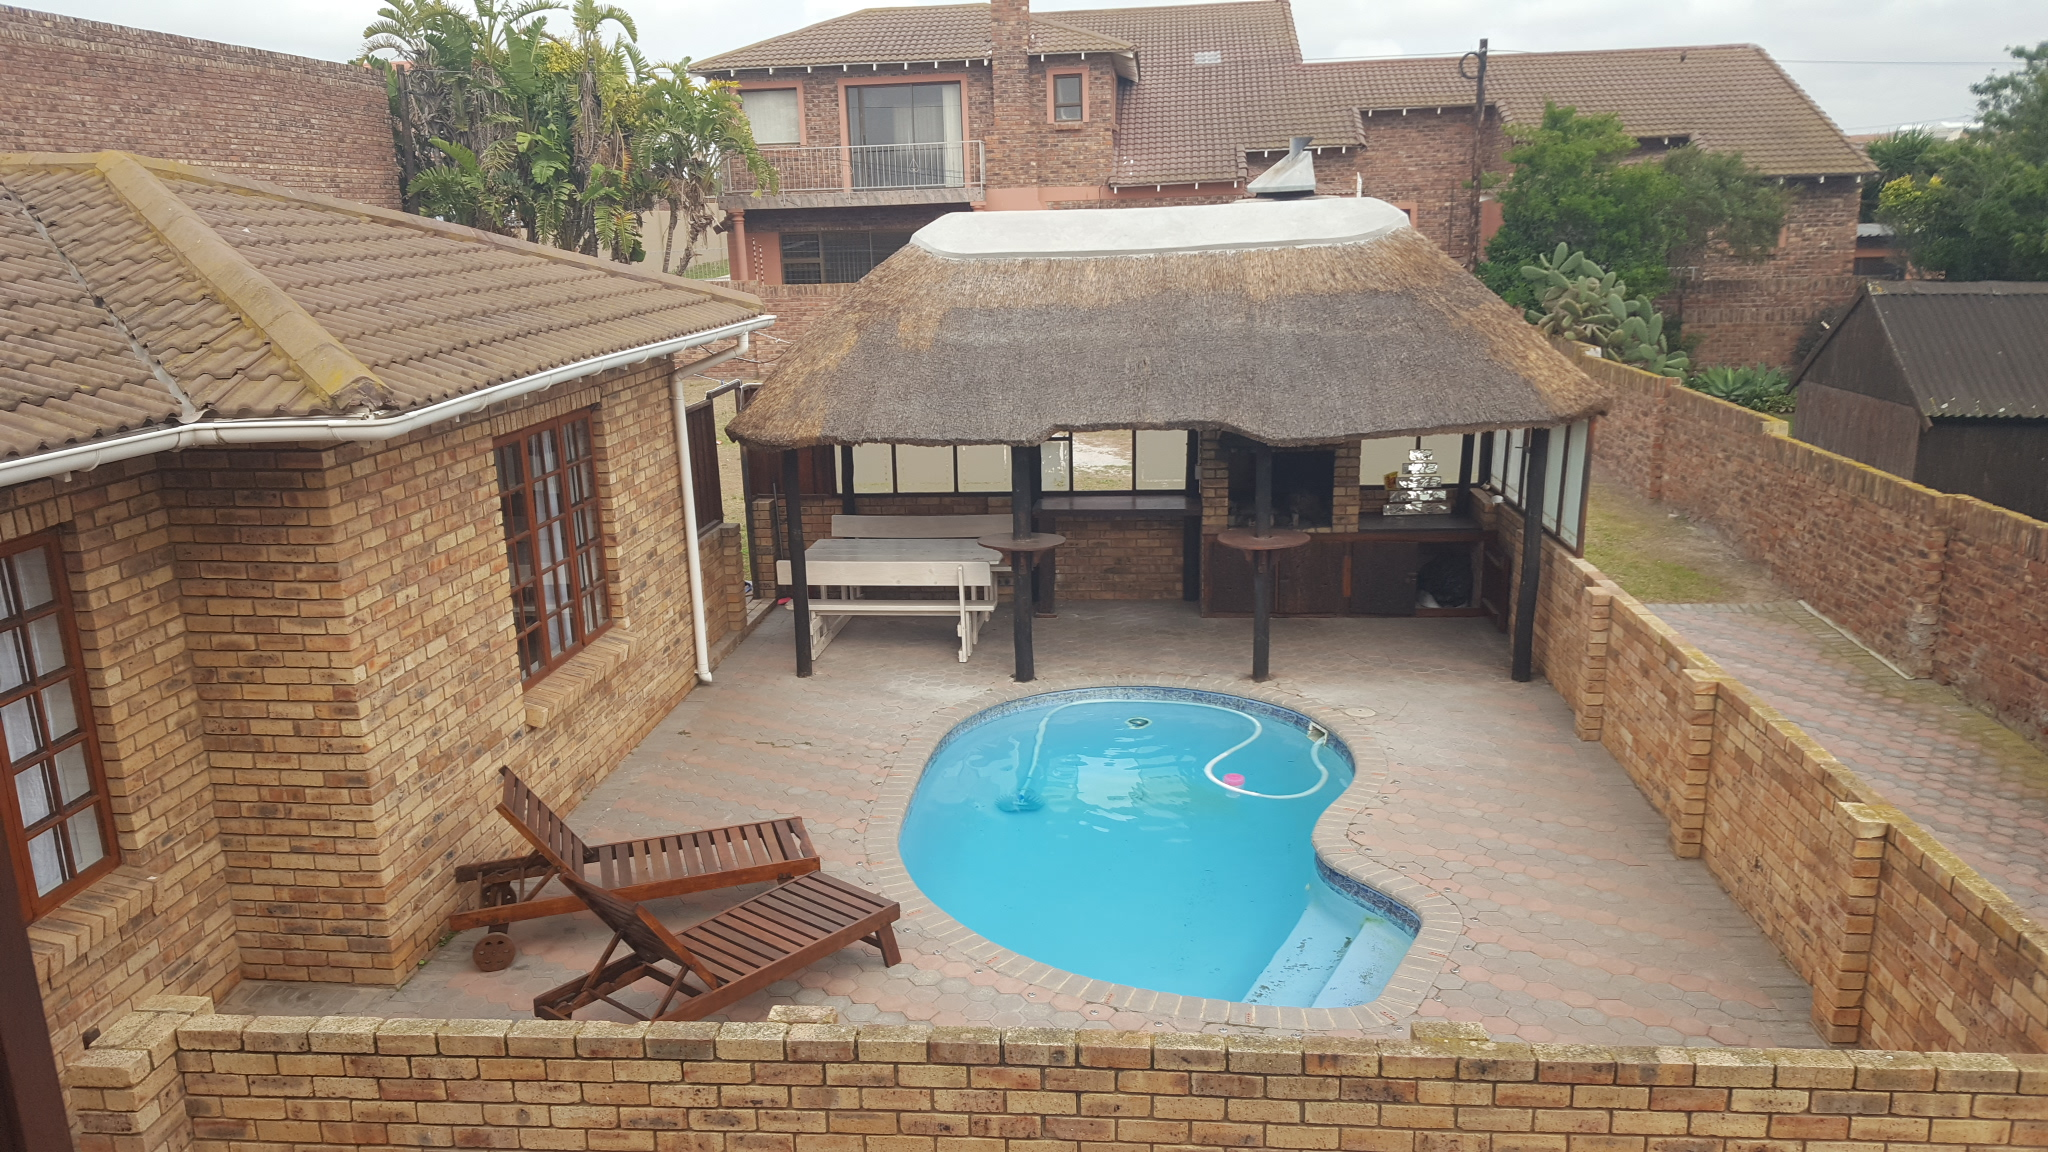 5 BedroomHouse For Sale In Bluewater Bay